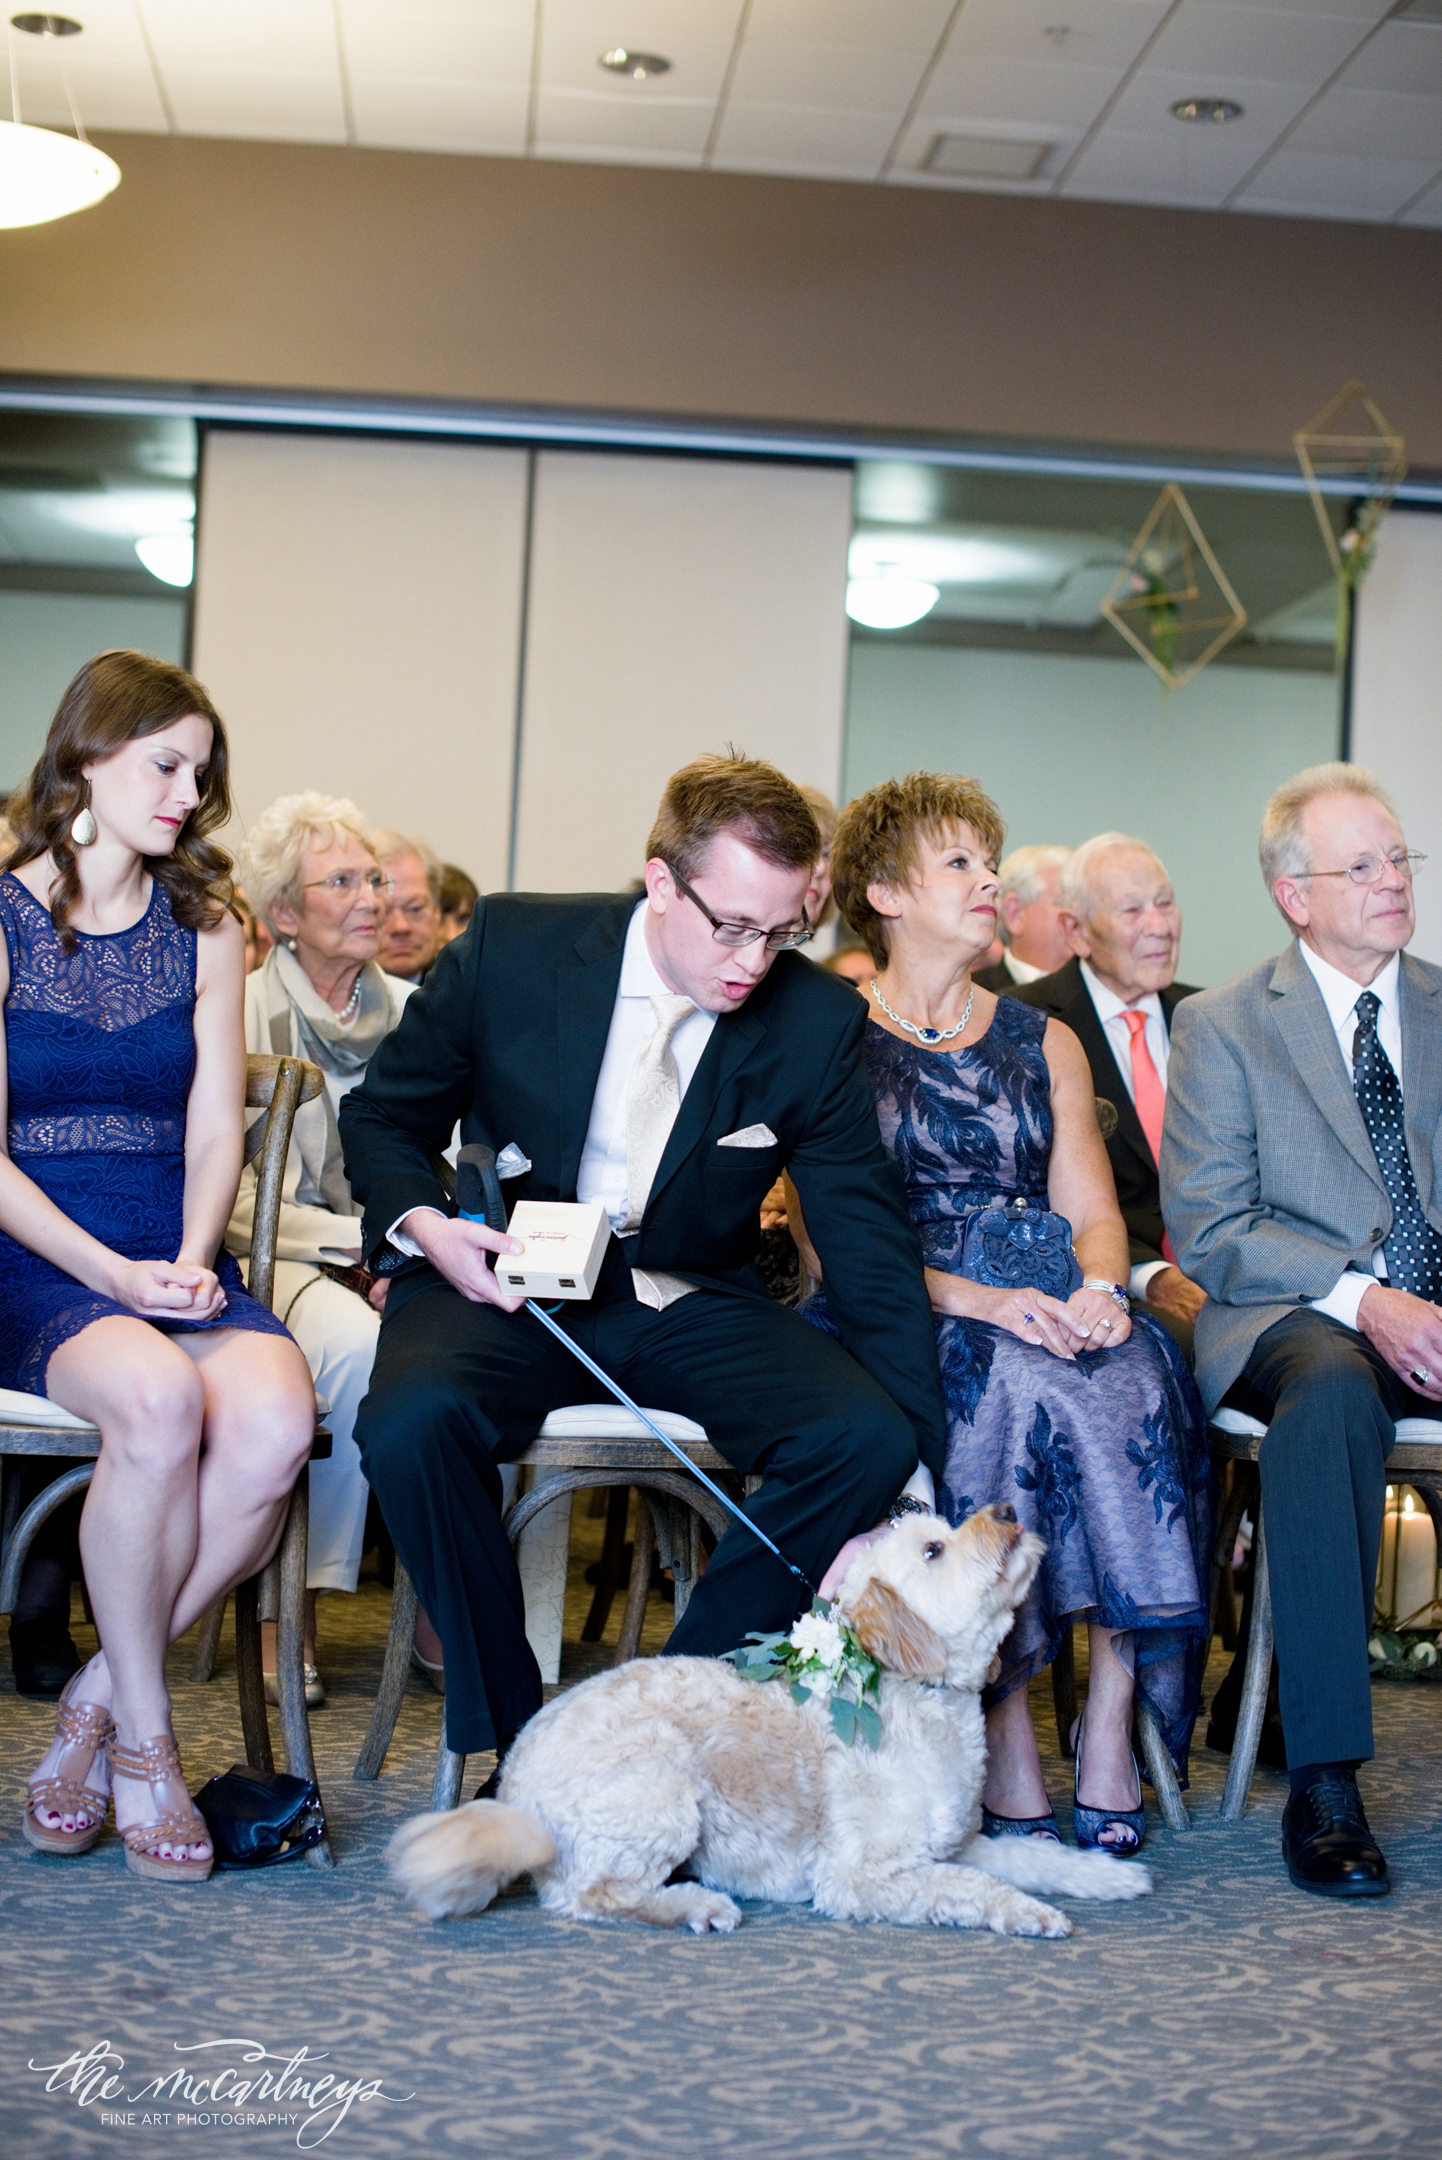 We were nervous to have babies attend the ceremony, we didn't want them to cry! Then our fur baby ended up whining during the ceremony! He hadn't seen me all day, and just wanted to be up by us. In hind sight we should have had him off the leash, but he still did a great job as ring bearer!